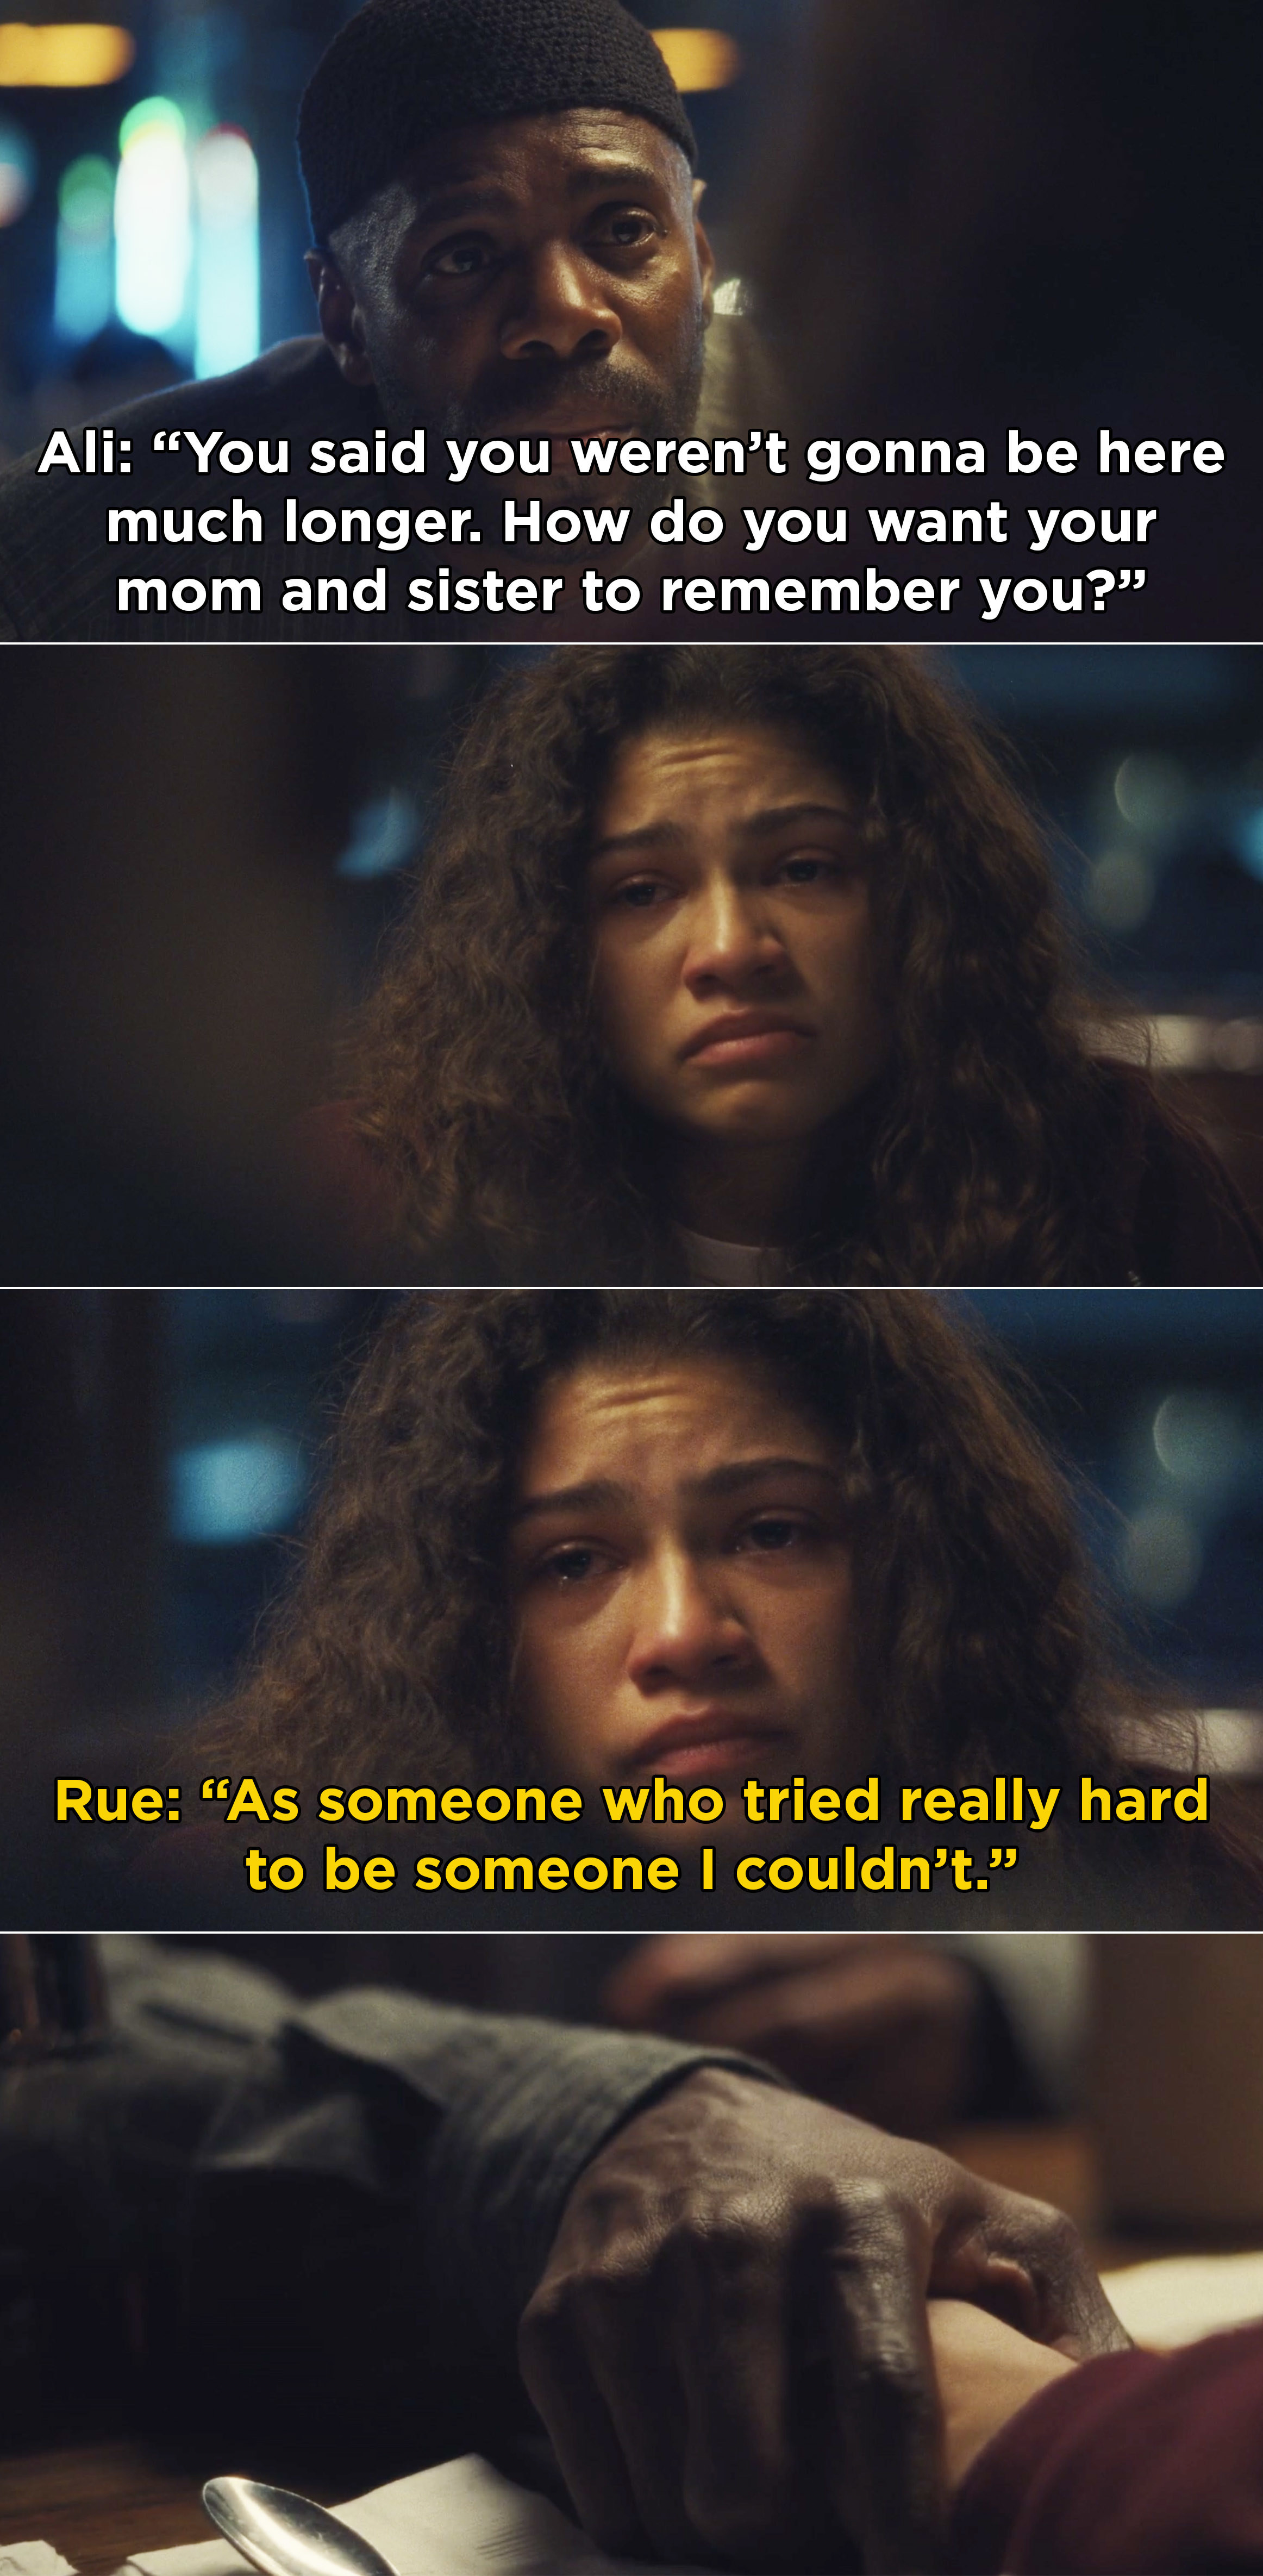 Ali asks Rue a question about how she wants to remembered as she cries